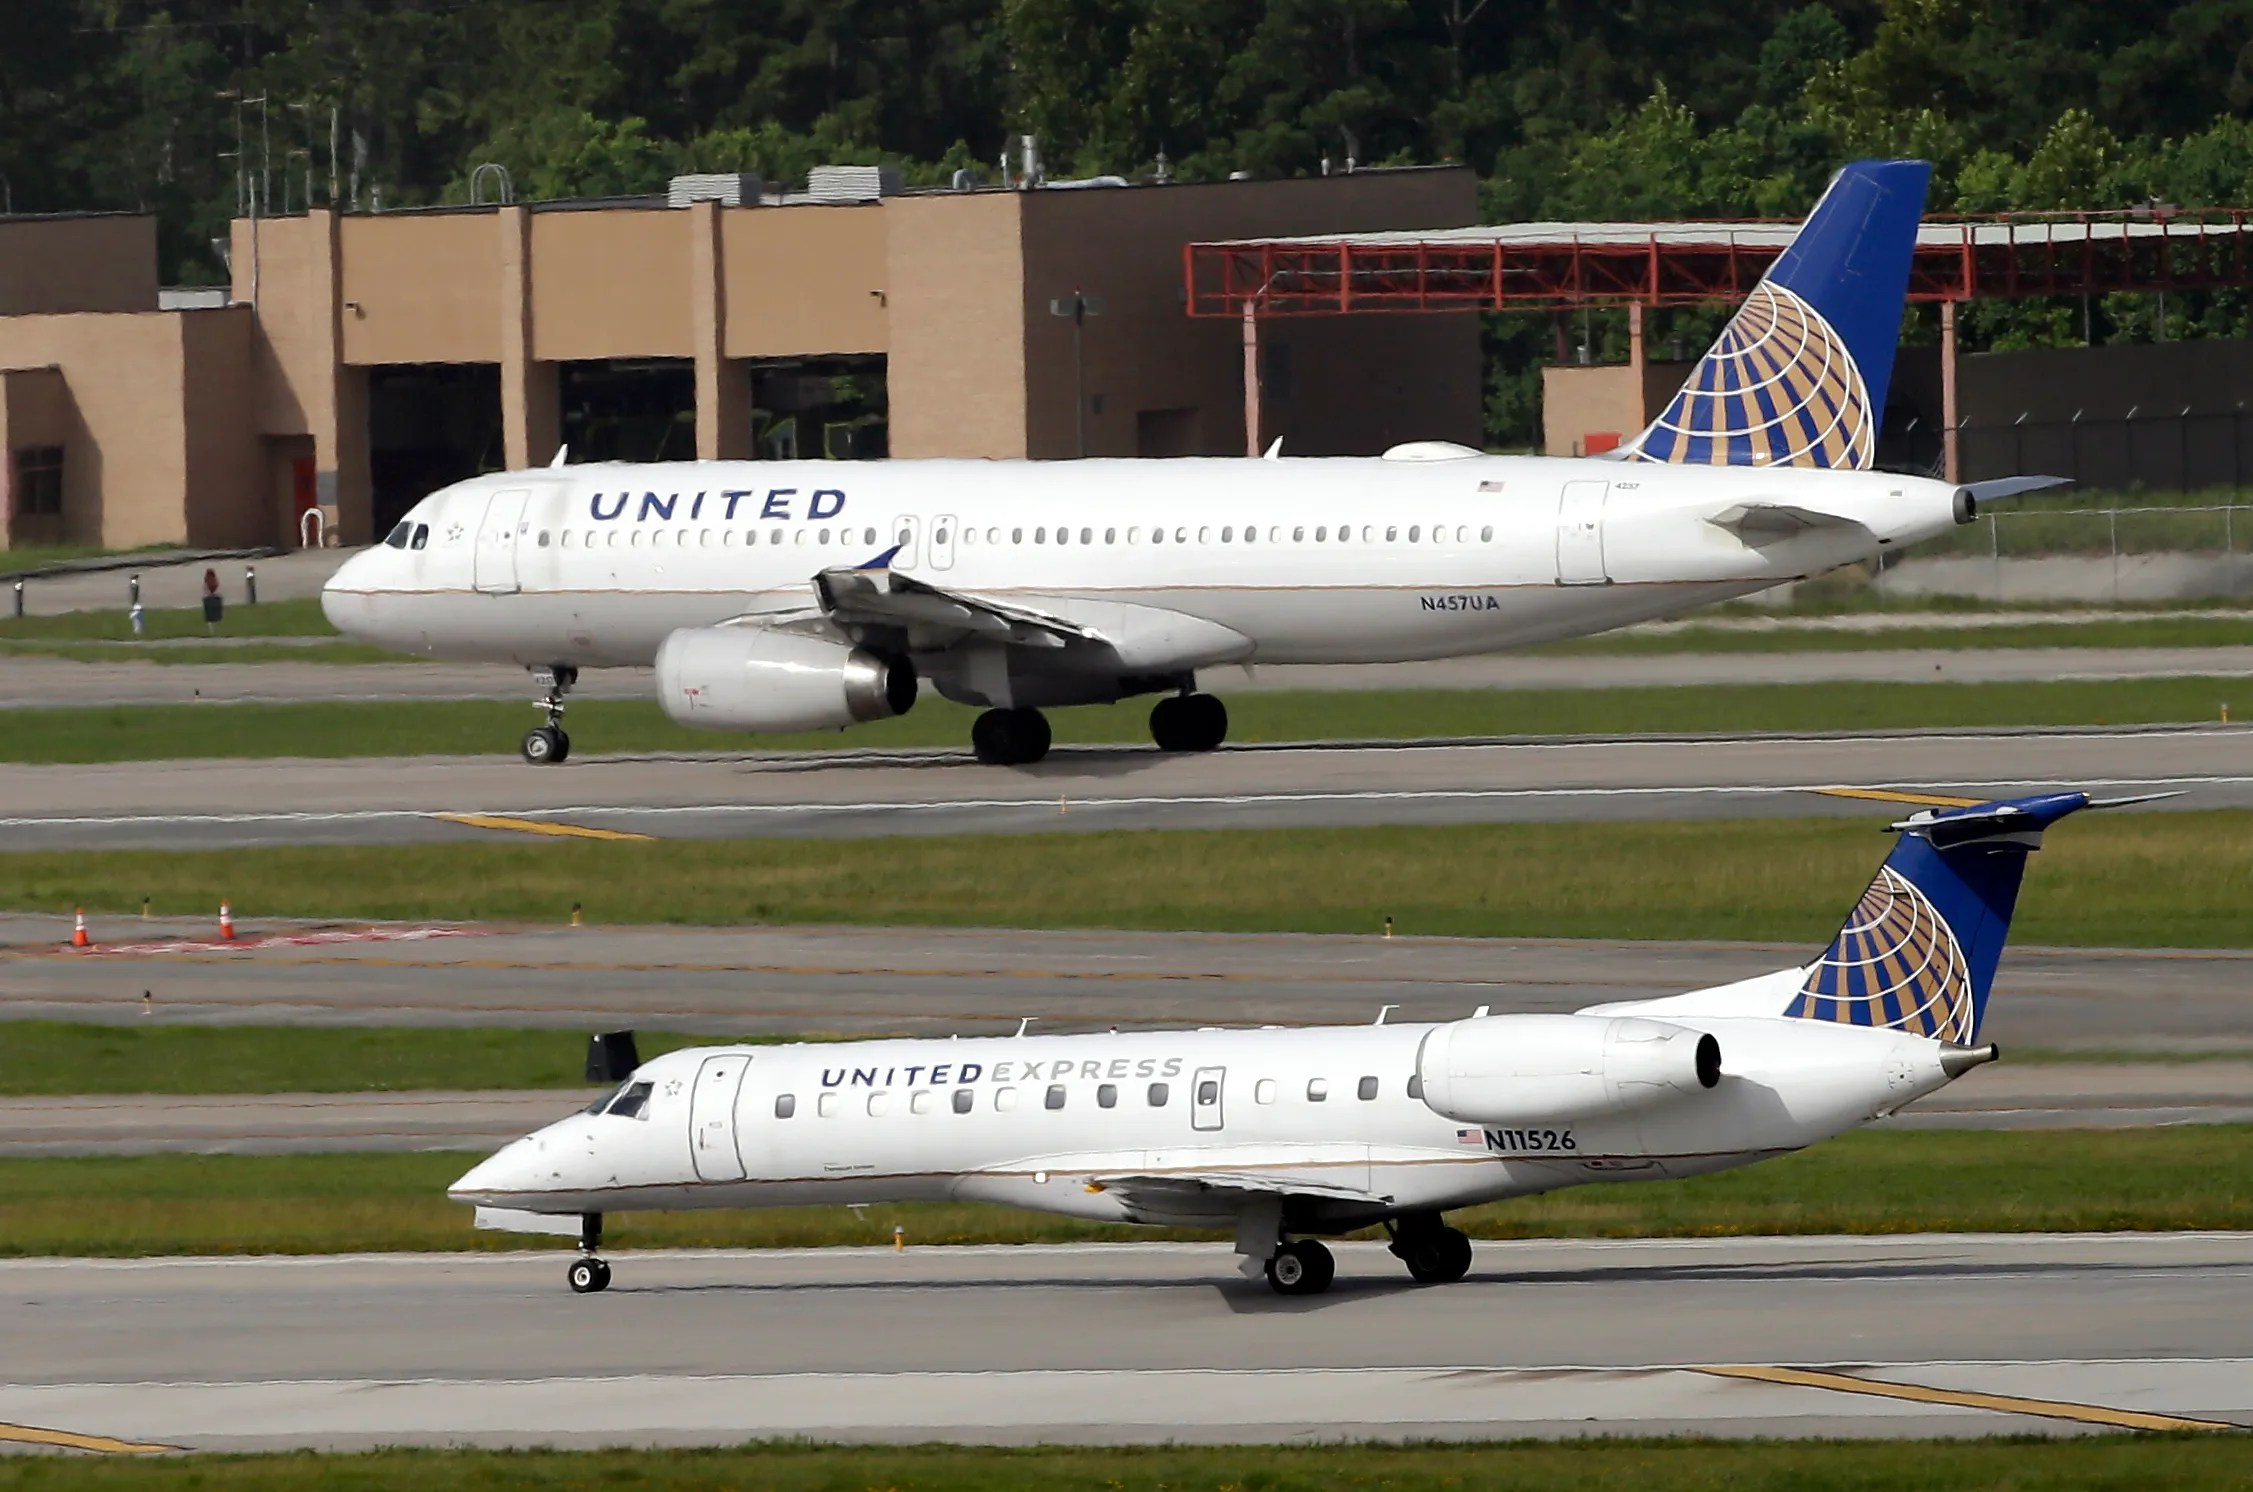 United flight diverts to Hawaii after flames shoot out of